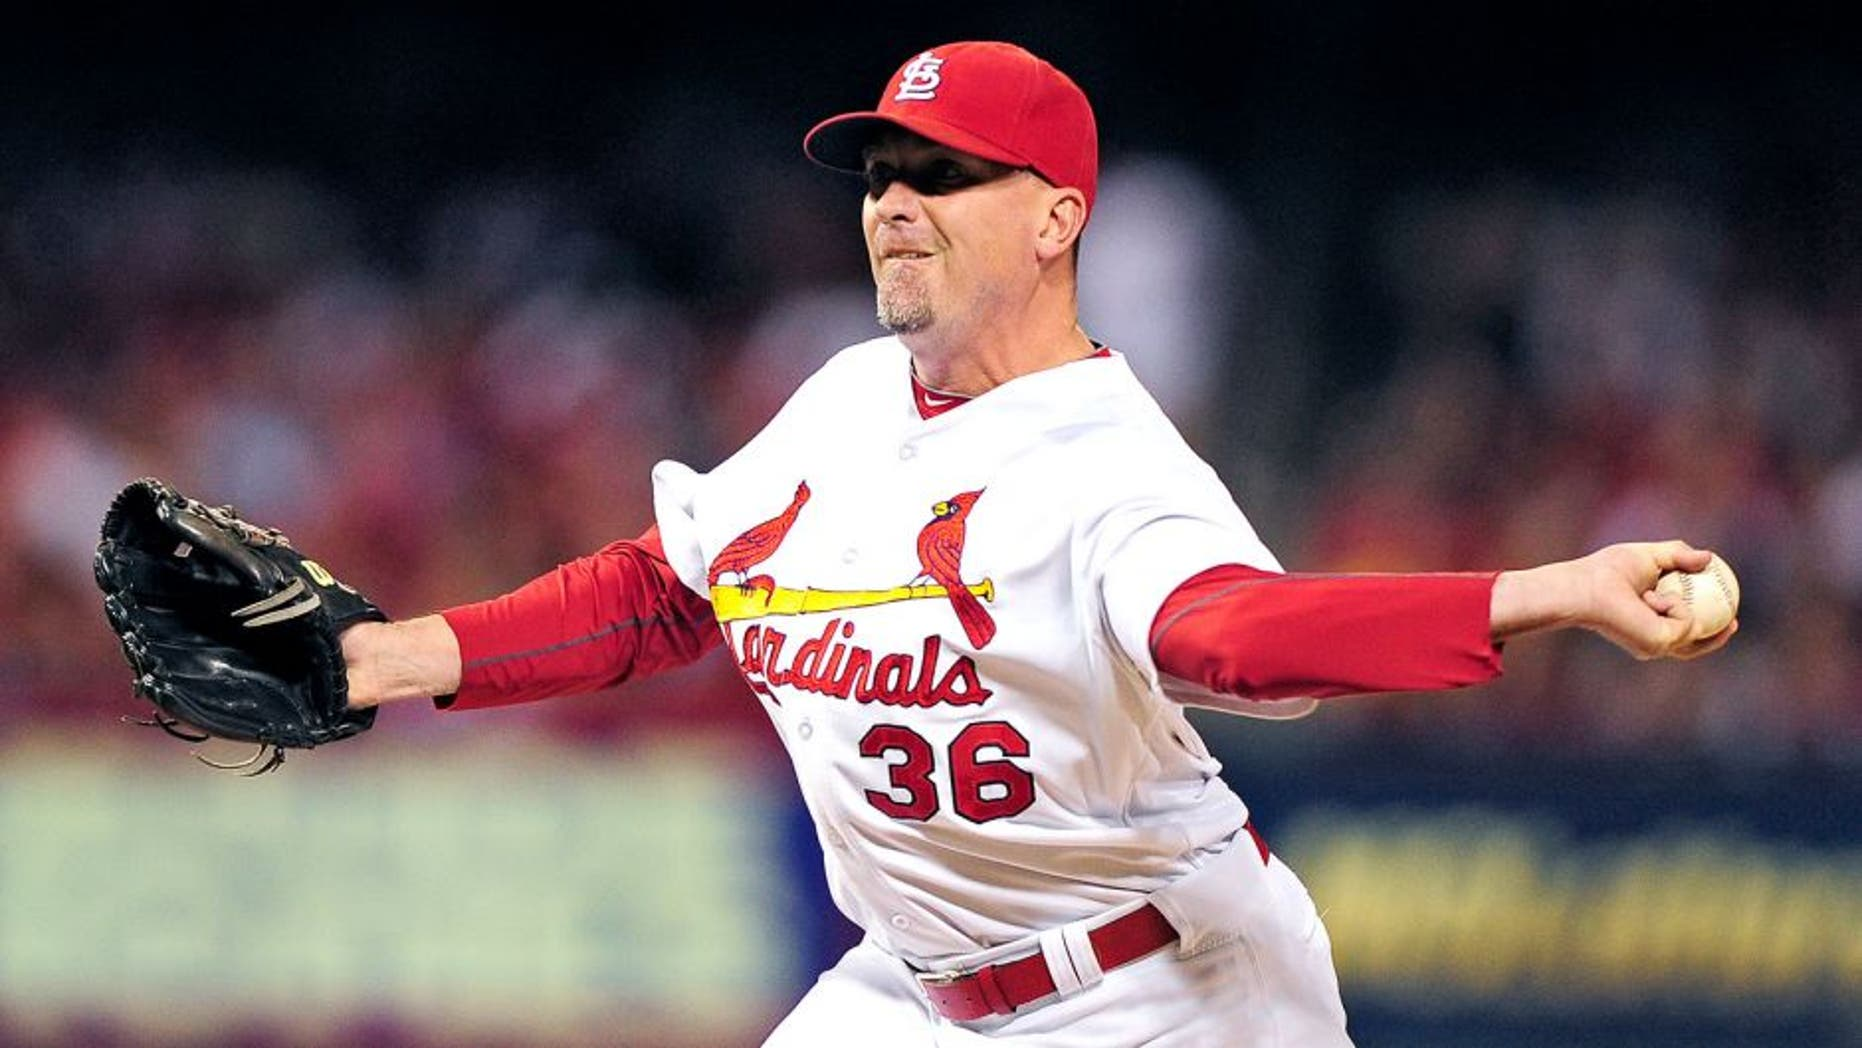 Sep 19, 2014; St. Louis, MO, USA; St. Louis Cardinals relief pitcher Randy Choate (36) throws to a Cincinnati Reds batter during the ninth inning at Busch Stadium. The Cardinals defeated the Reds 2-1. Mandatory Credit: Jeff Curry-USA TODAY Sports